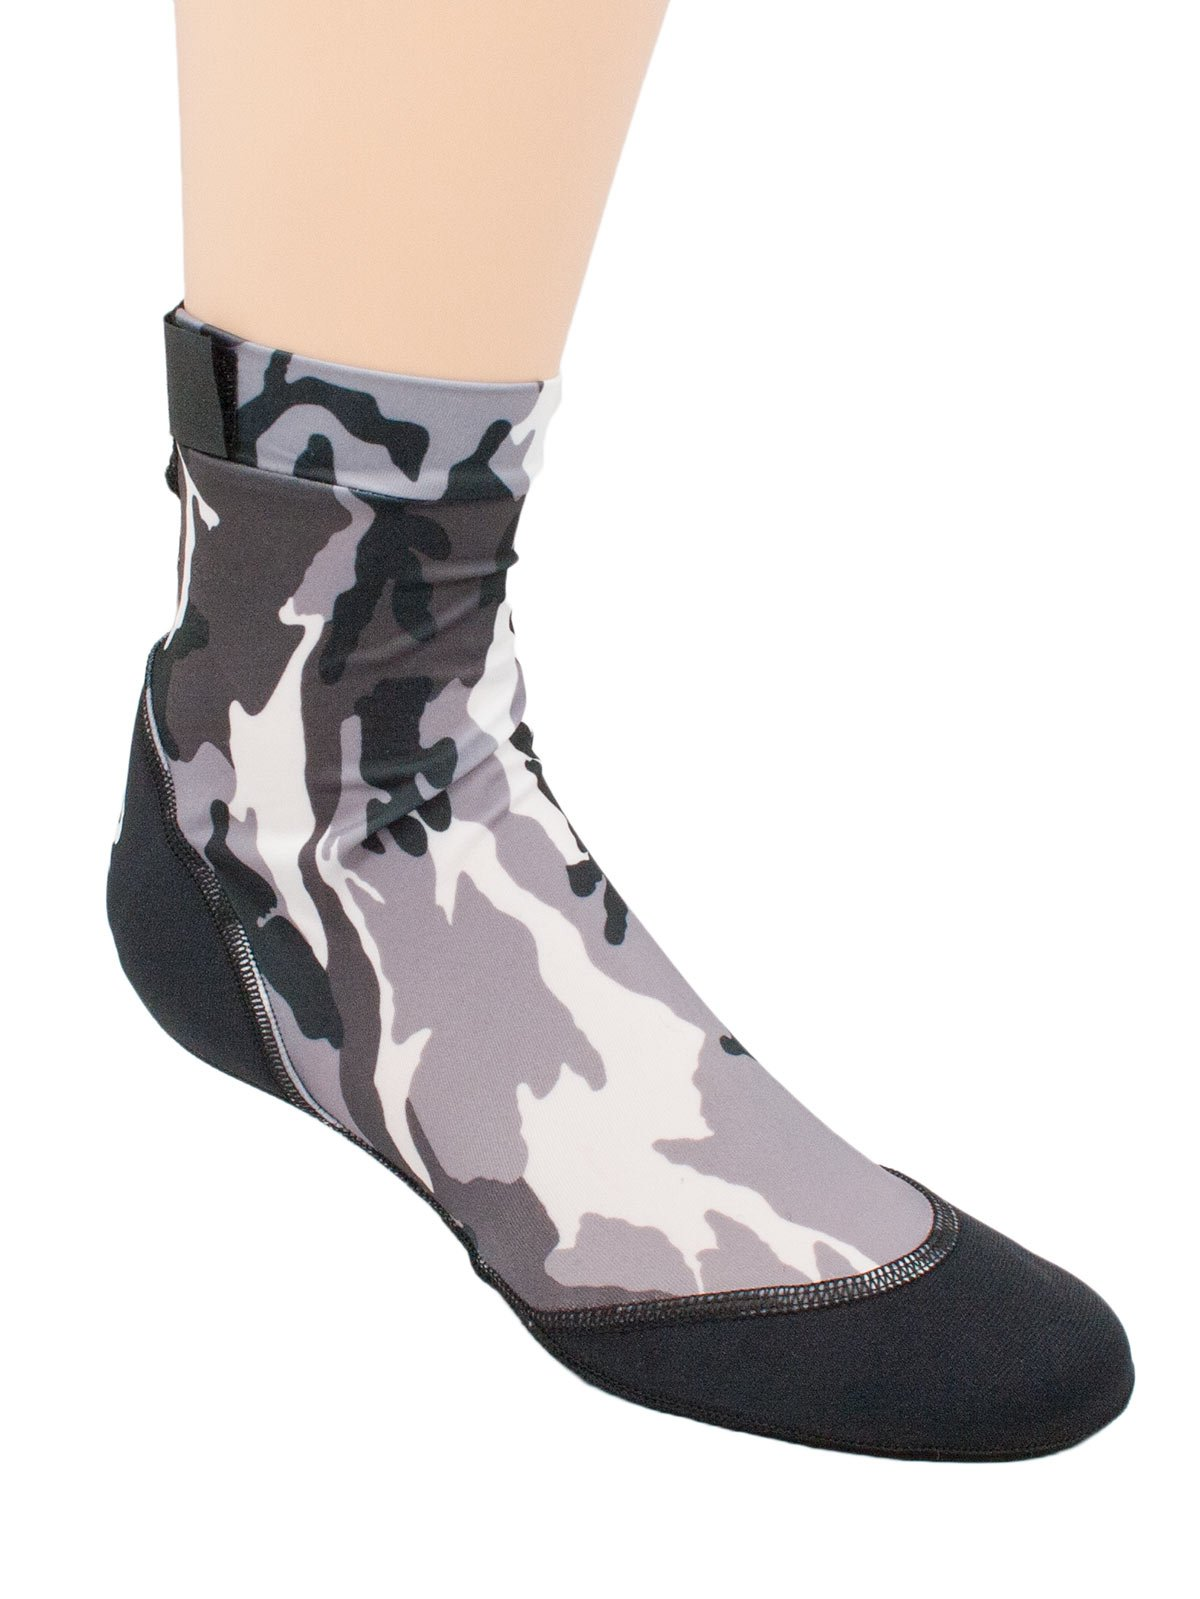 Sand Socks Vincere for Soccer, Volleyball, Snorkeling XXS Black camo